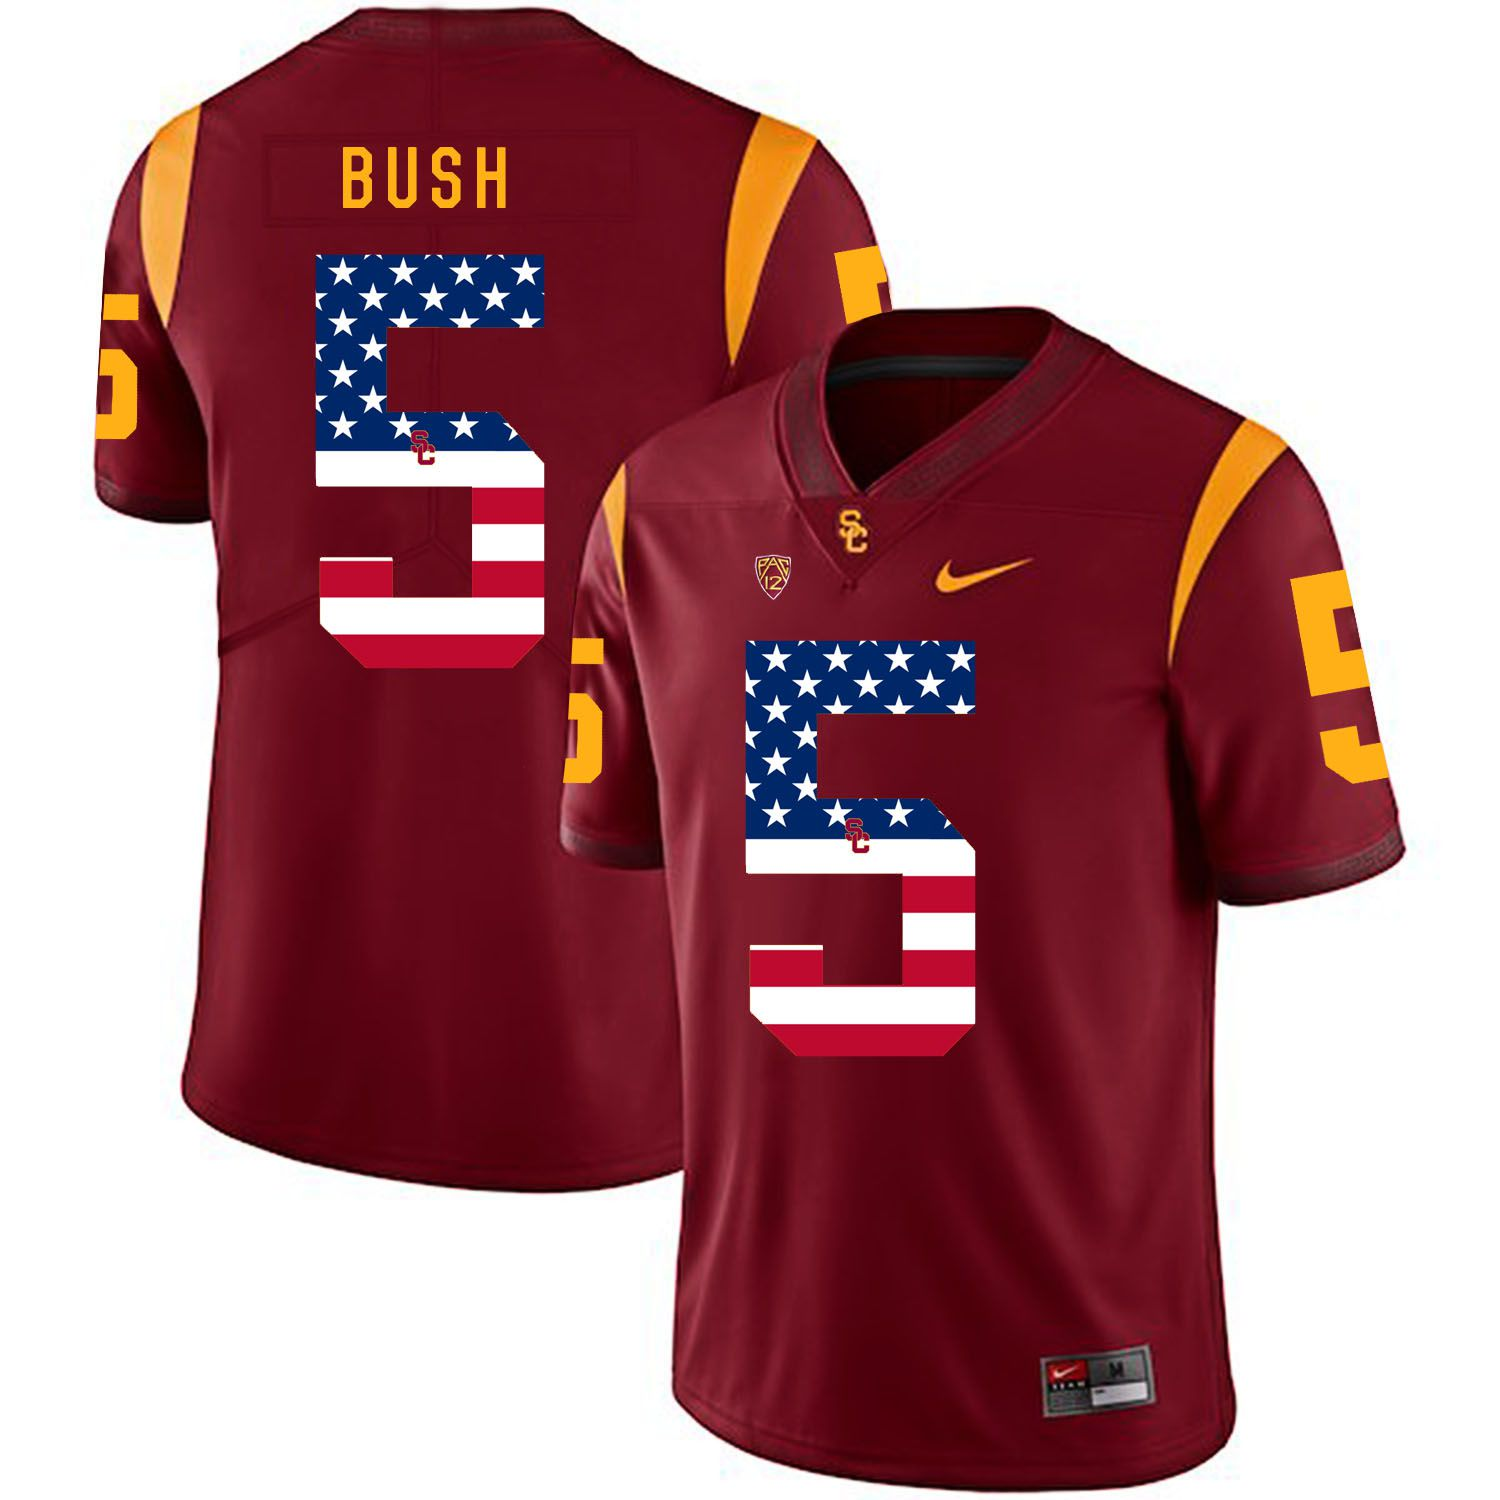 Men USC Trojans 5 Bush Red Flag Customized NCAA Jerseys